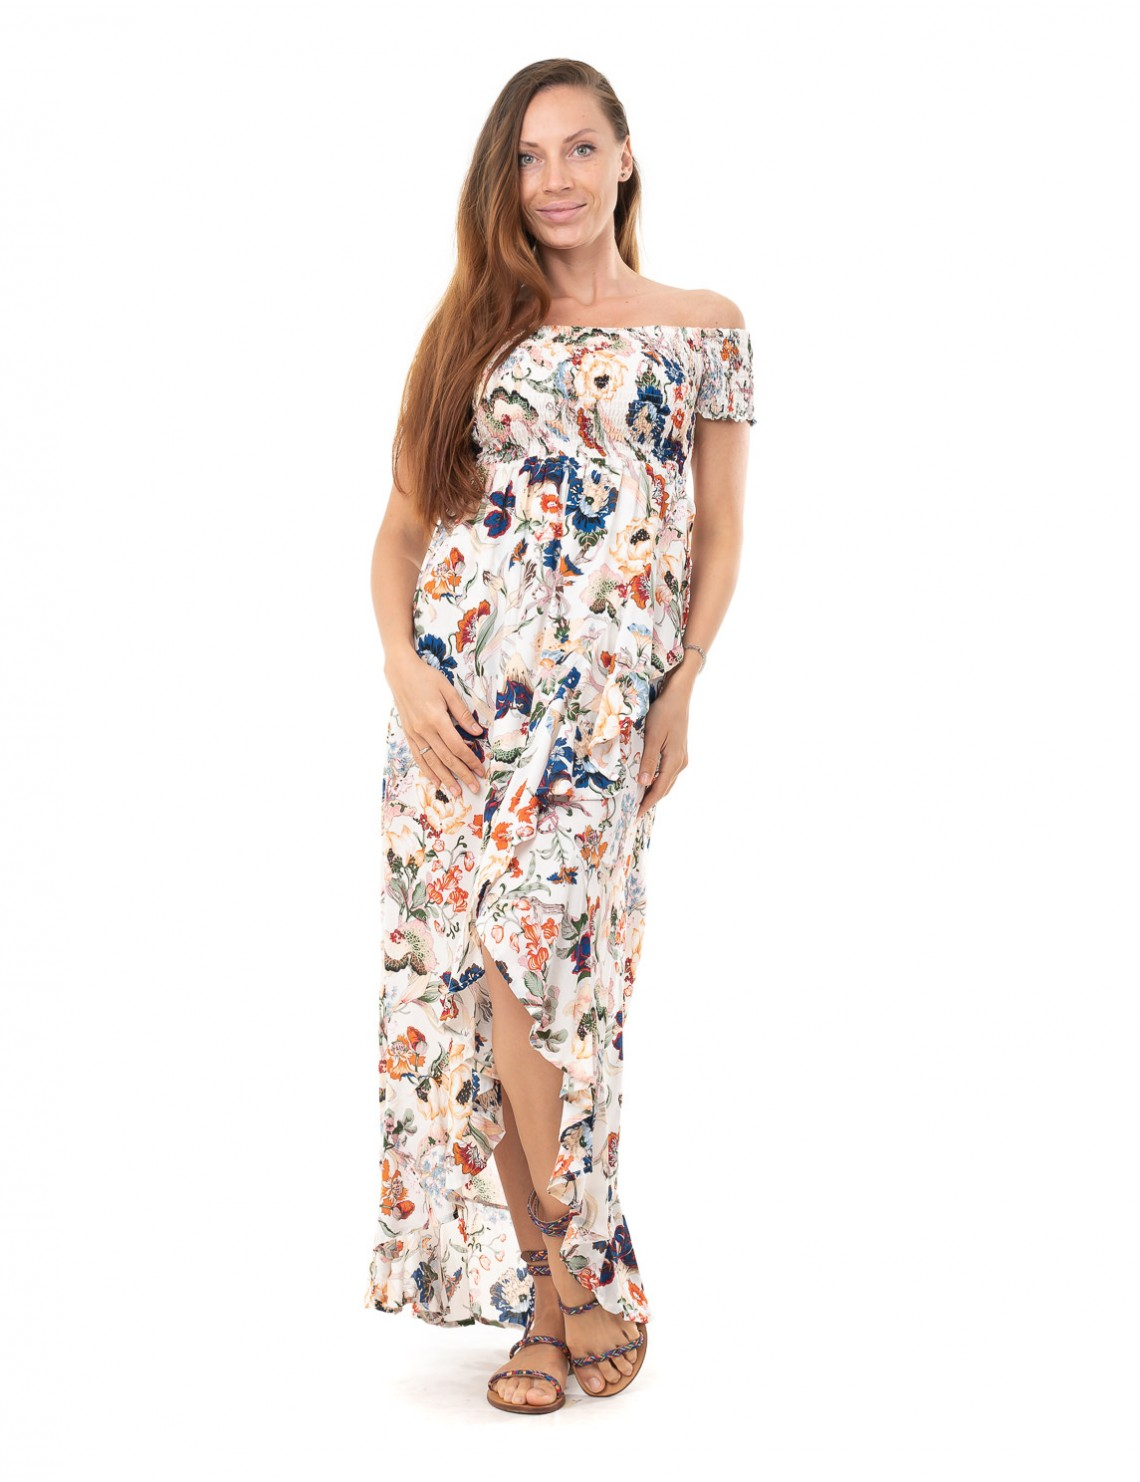 Dress Maria - Japonese Floral White